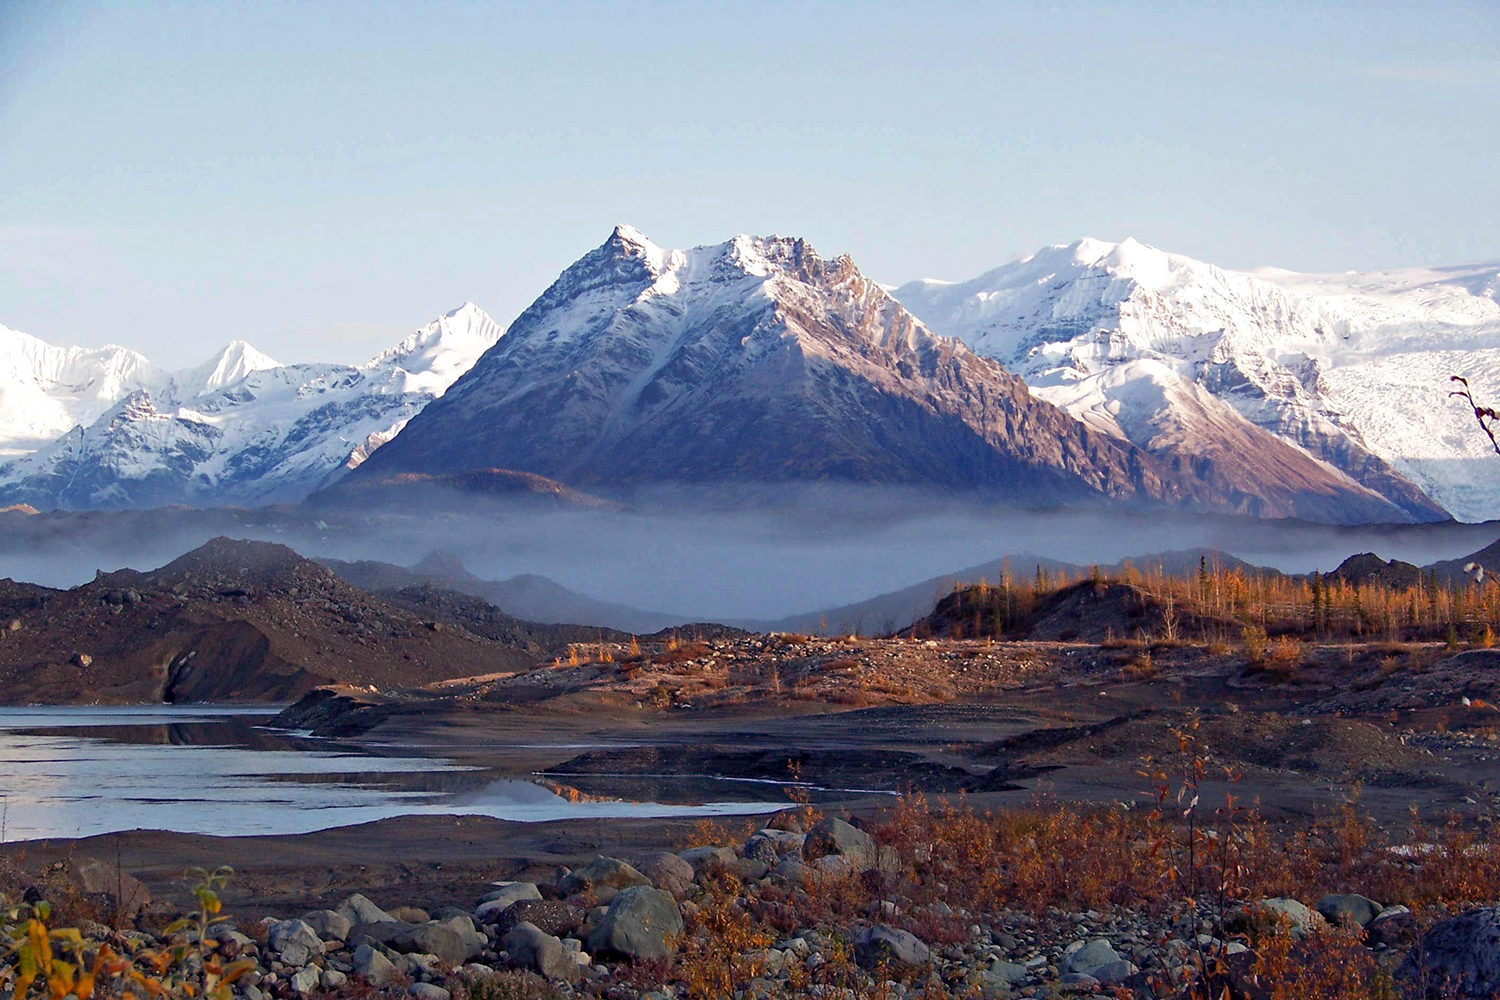 The Largest, Most Rugged National Park You've Never Heard Of and Why You Should Go: Wrangell-St. Elias, Alaska